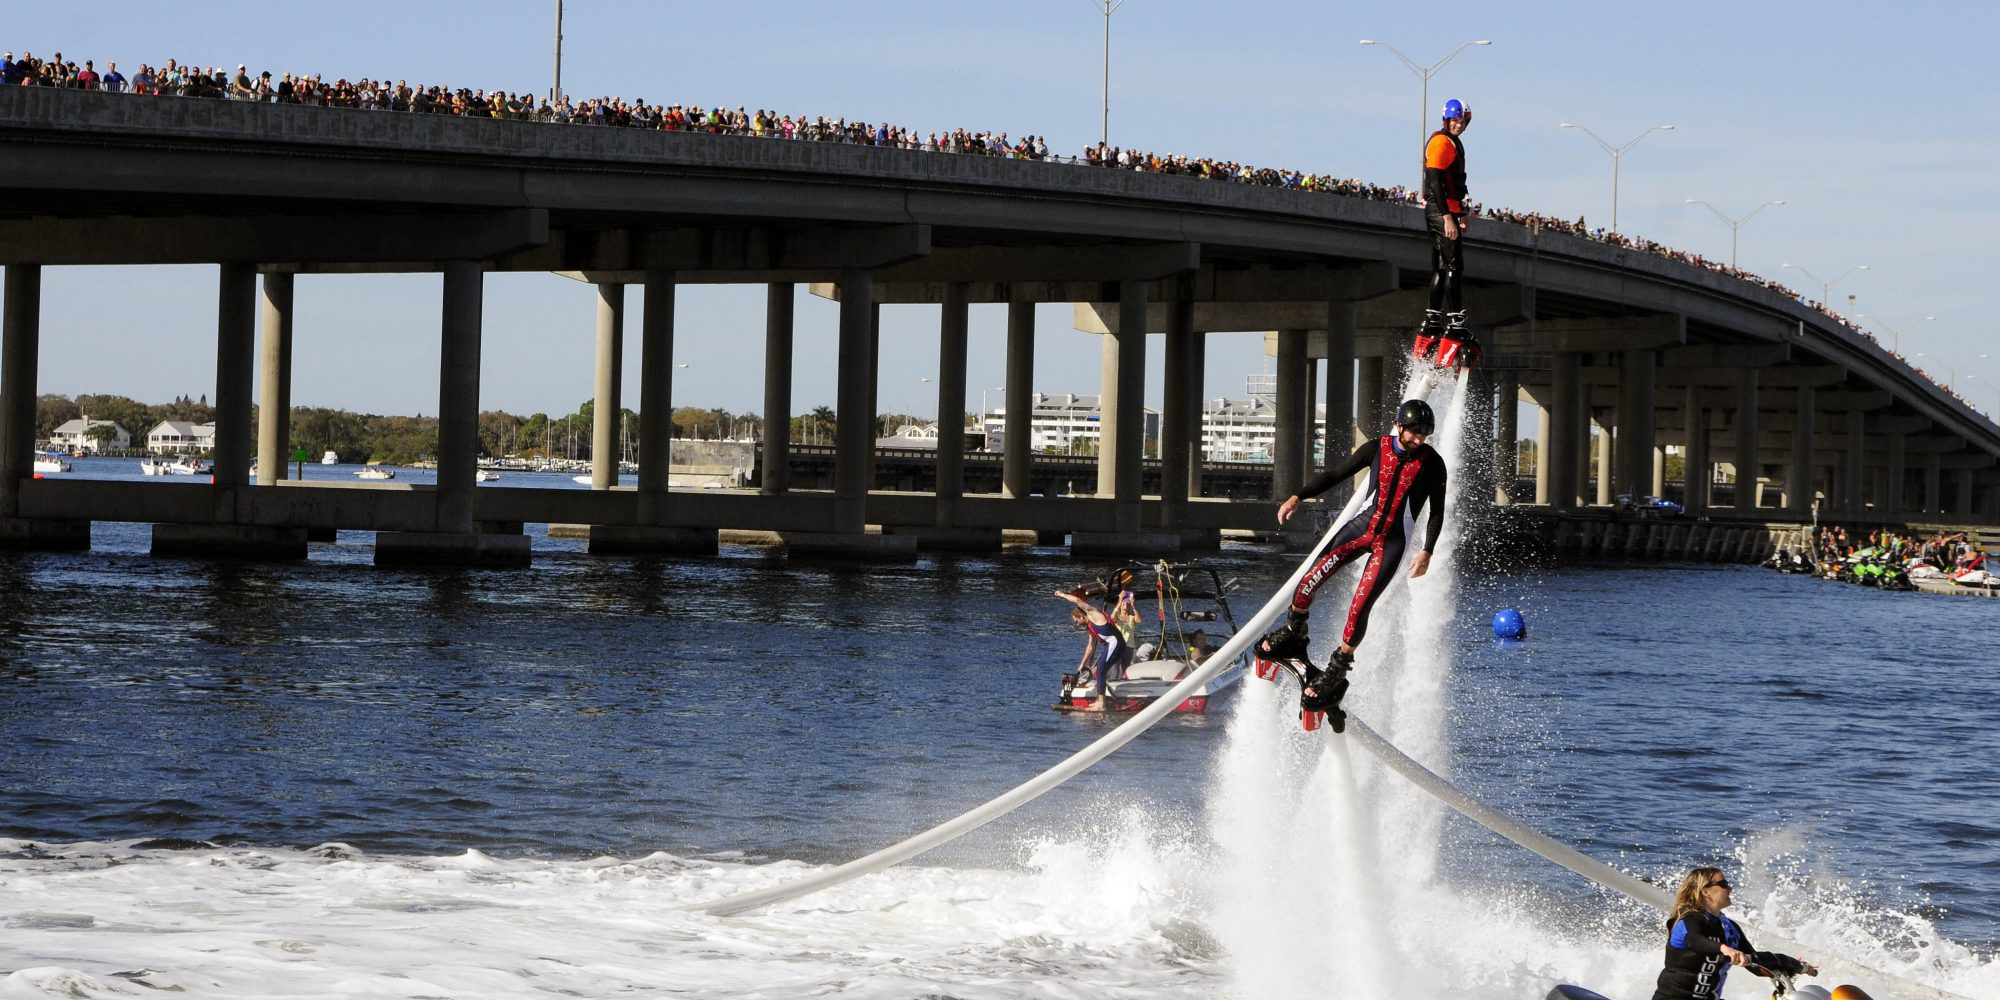 Bradenton Area River Regatta